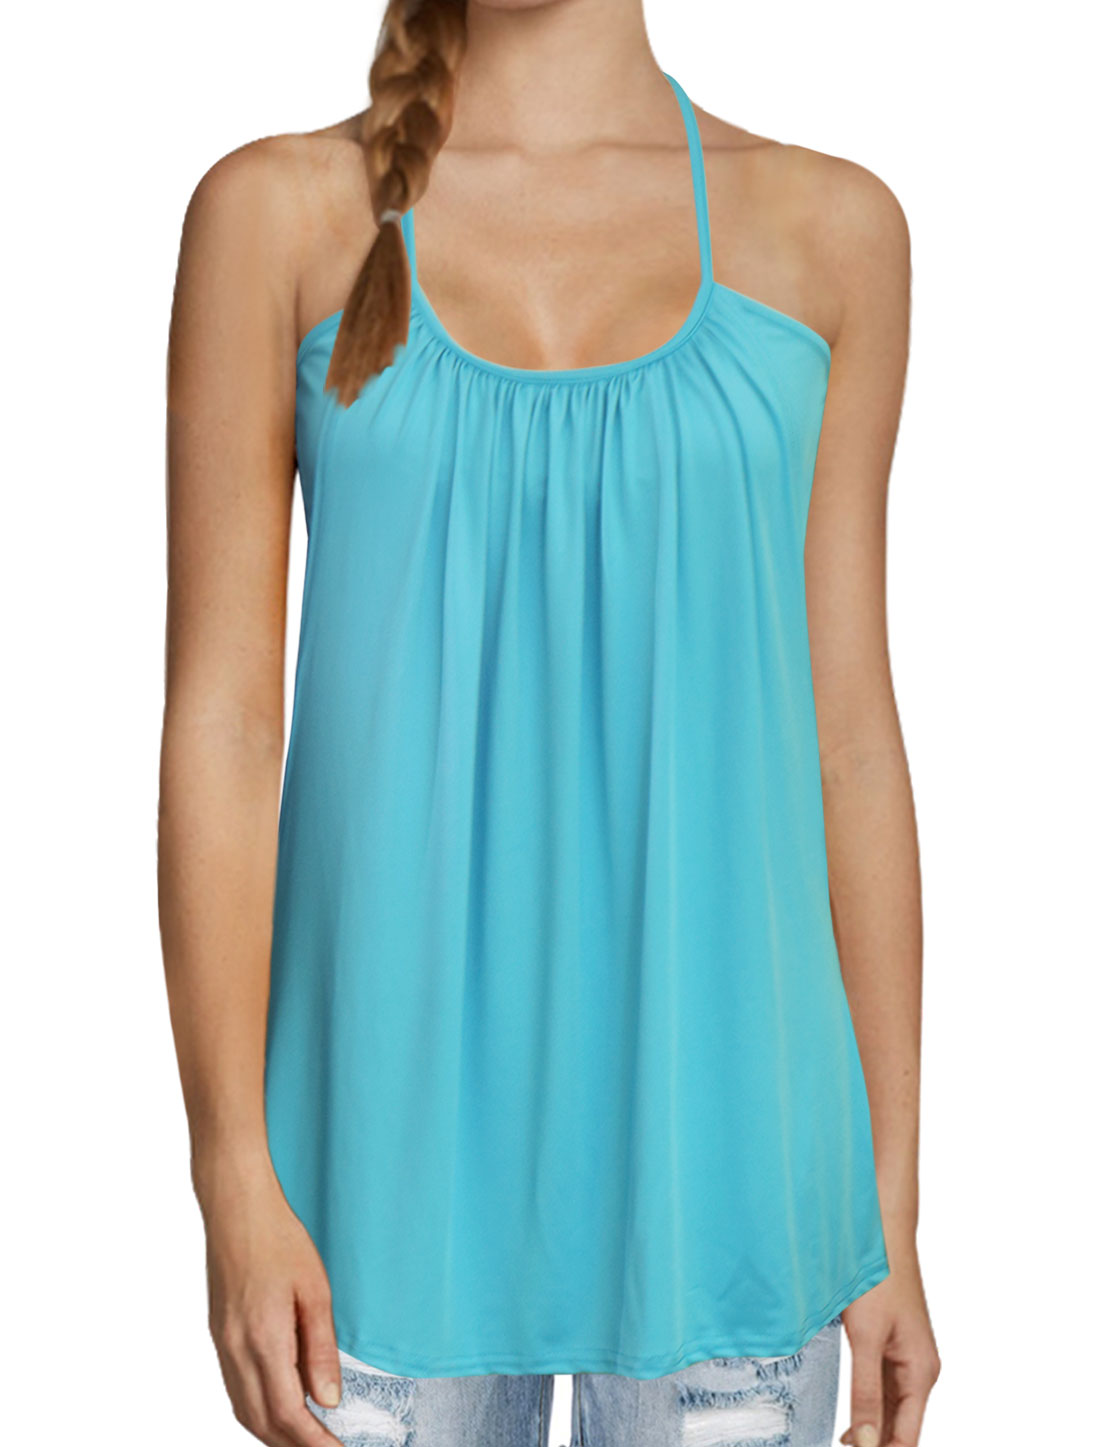 Women Scoop Neck Sleeveless Ruched Layered Cami Top Blue L